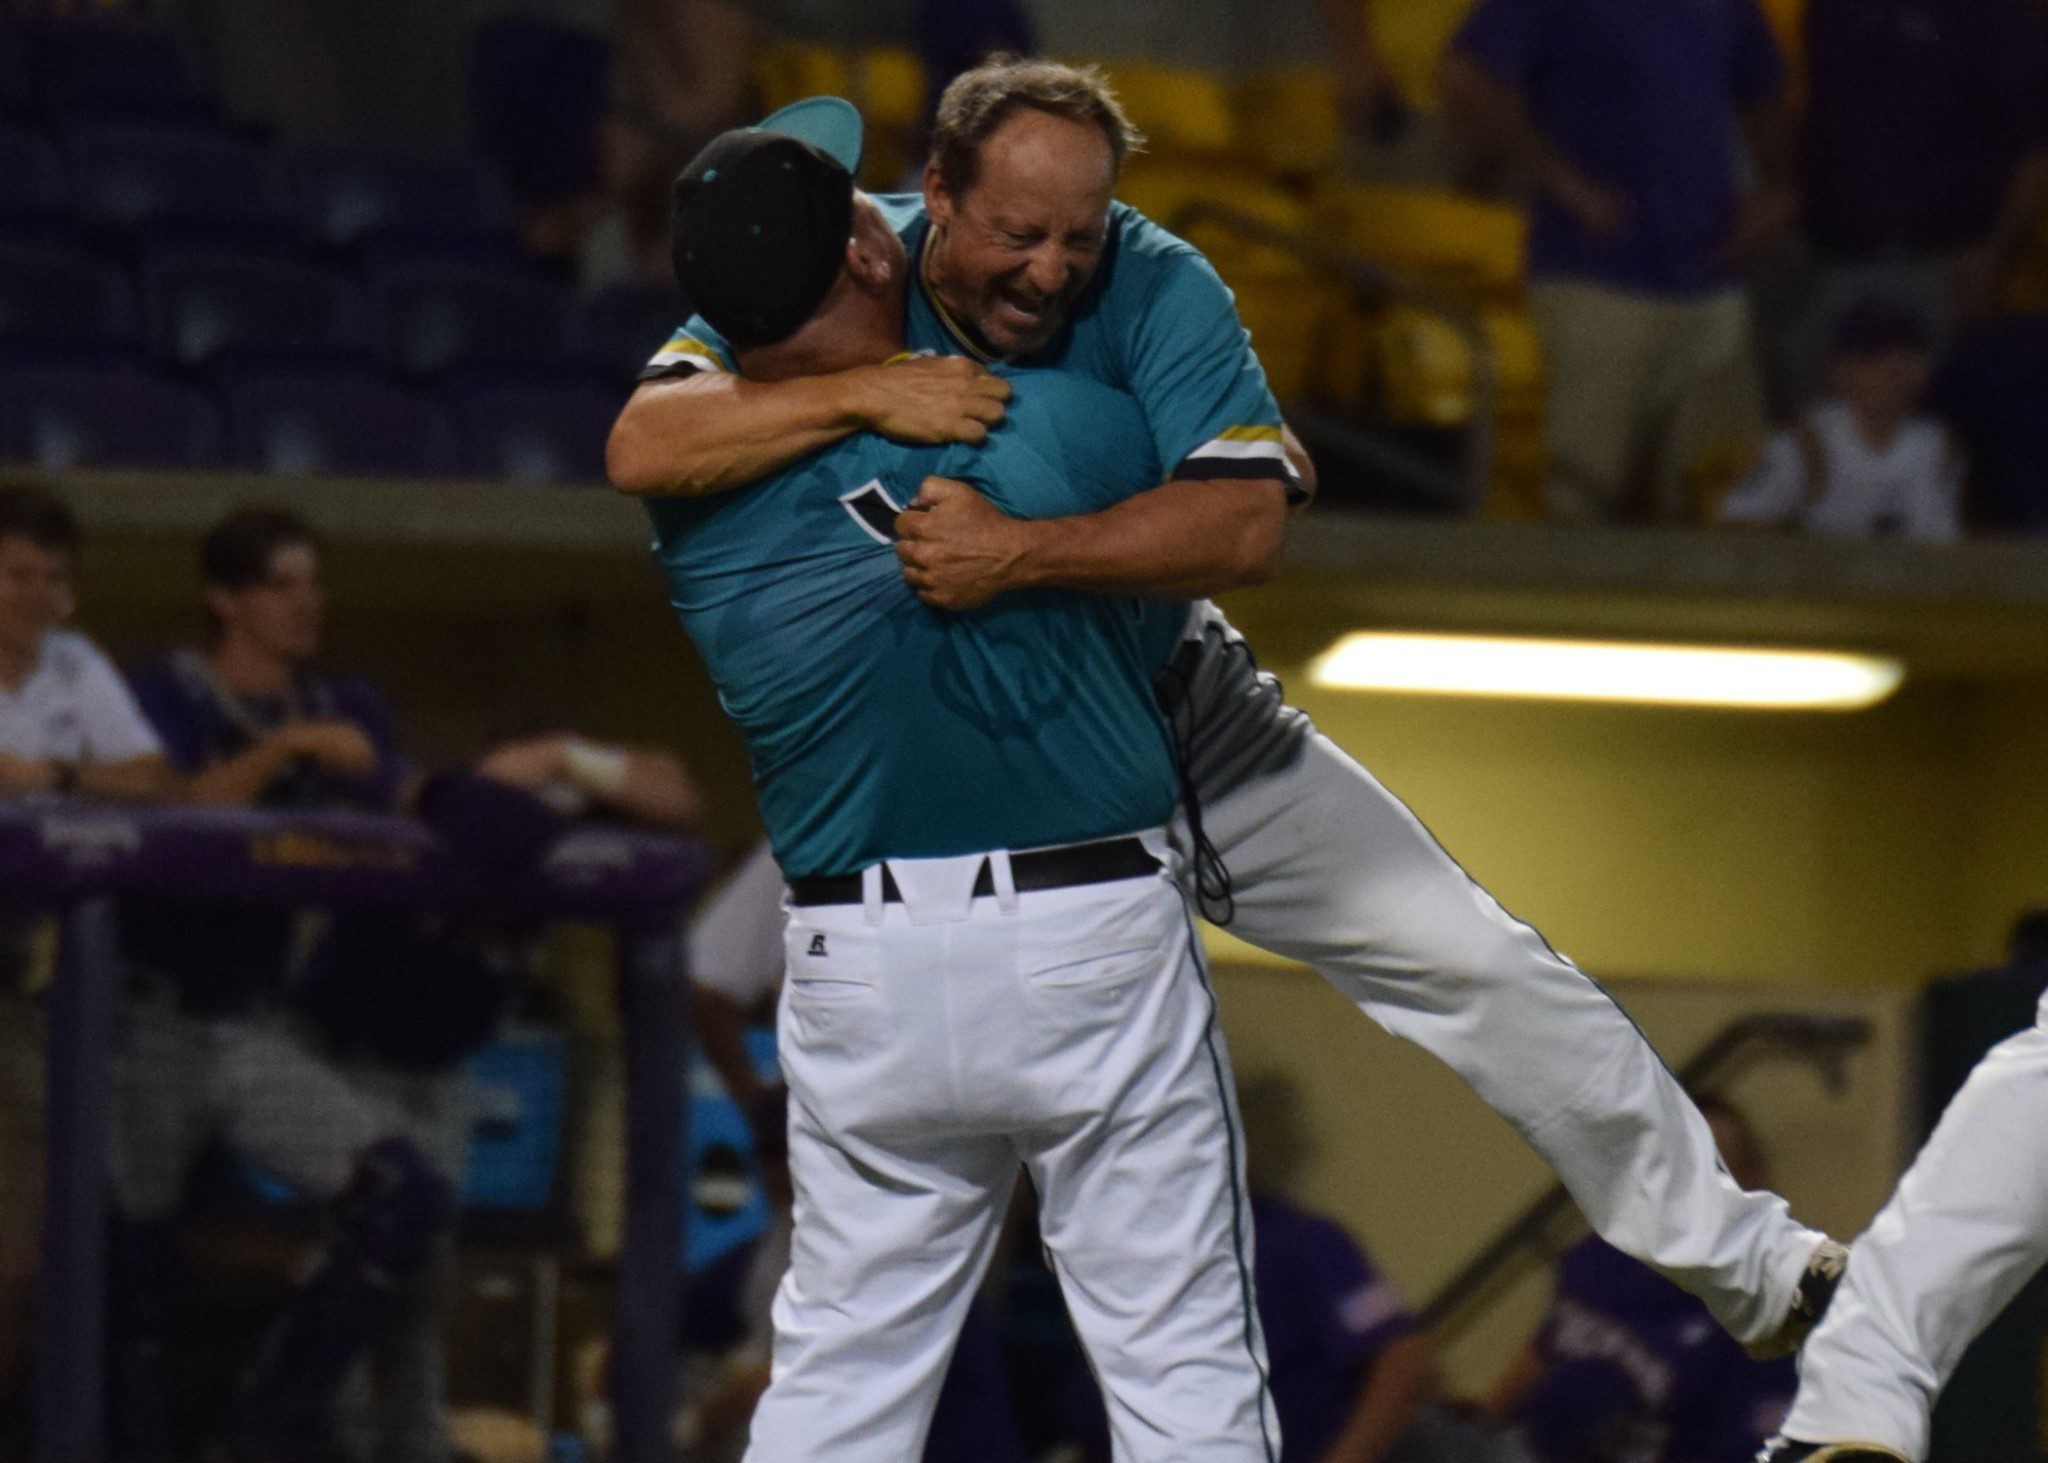 Coastal Carolina volunteer assistant Matt Schilling lifts up head coach Gary Gilmore after the Chants clinched their first trip to Omaha (Aaron Fitt)